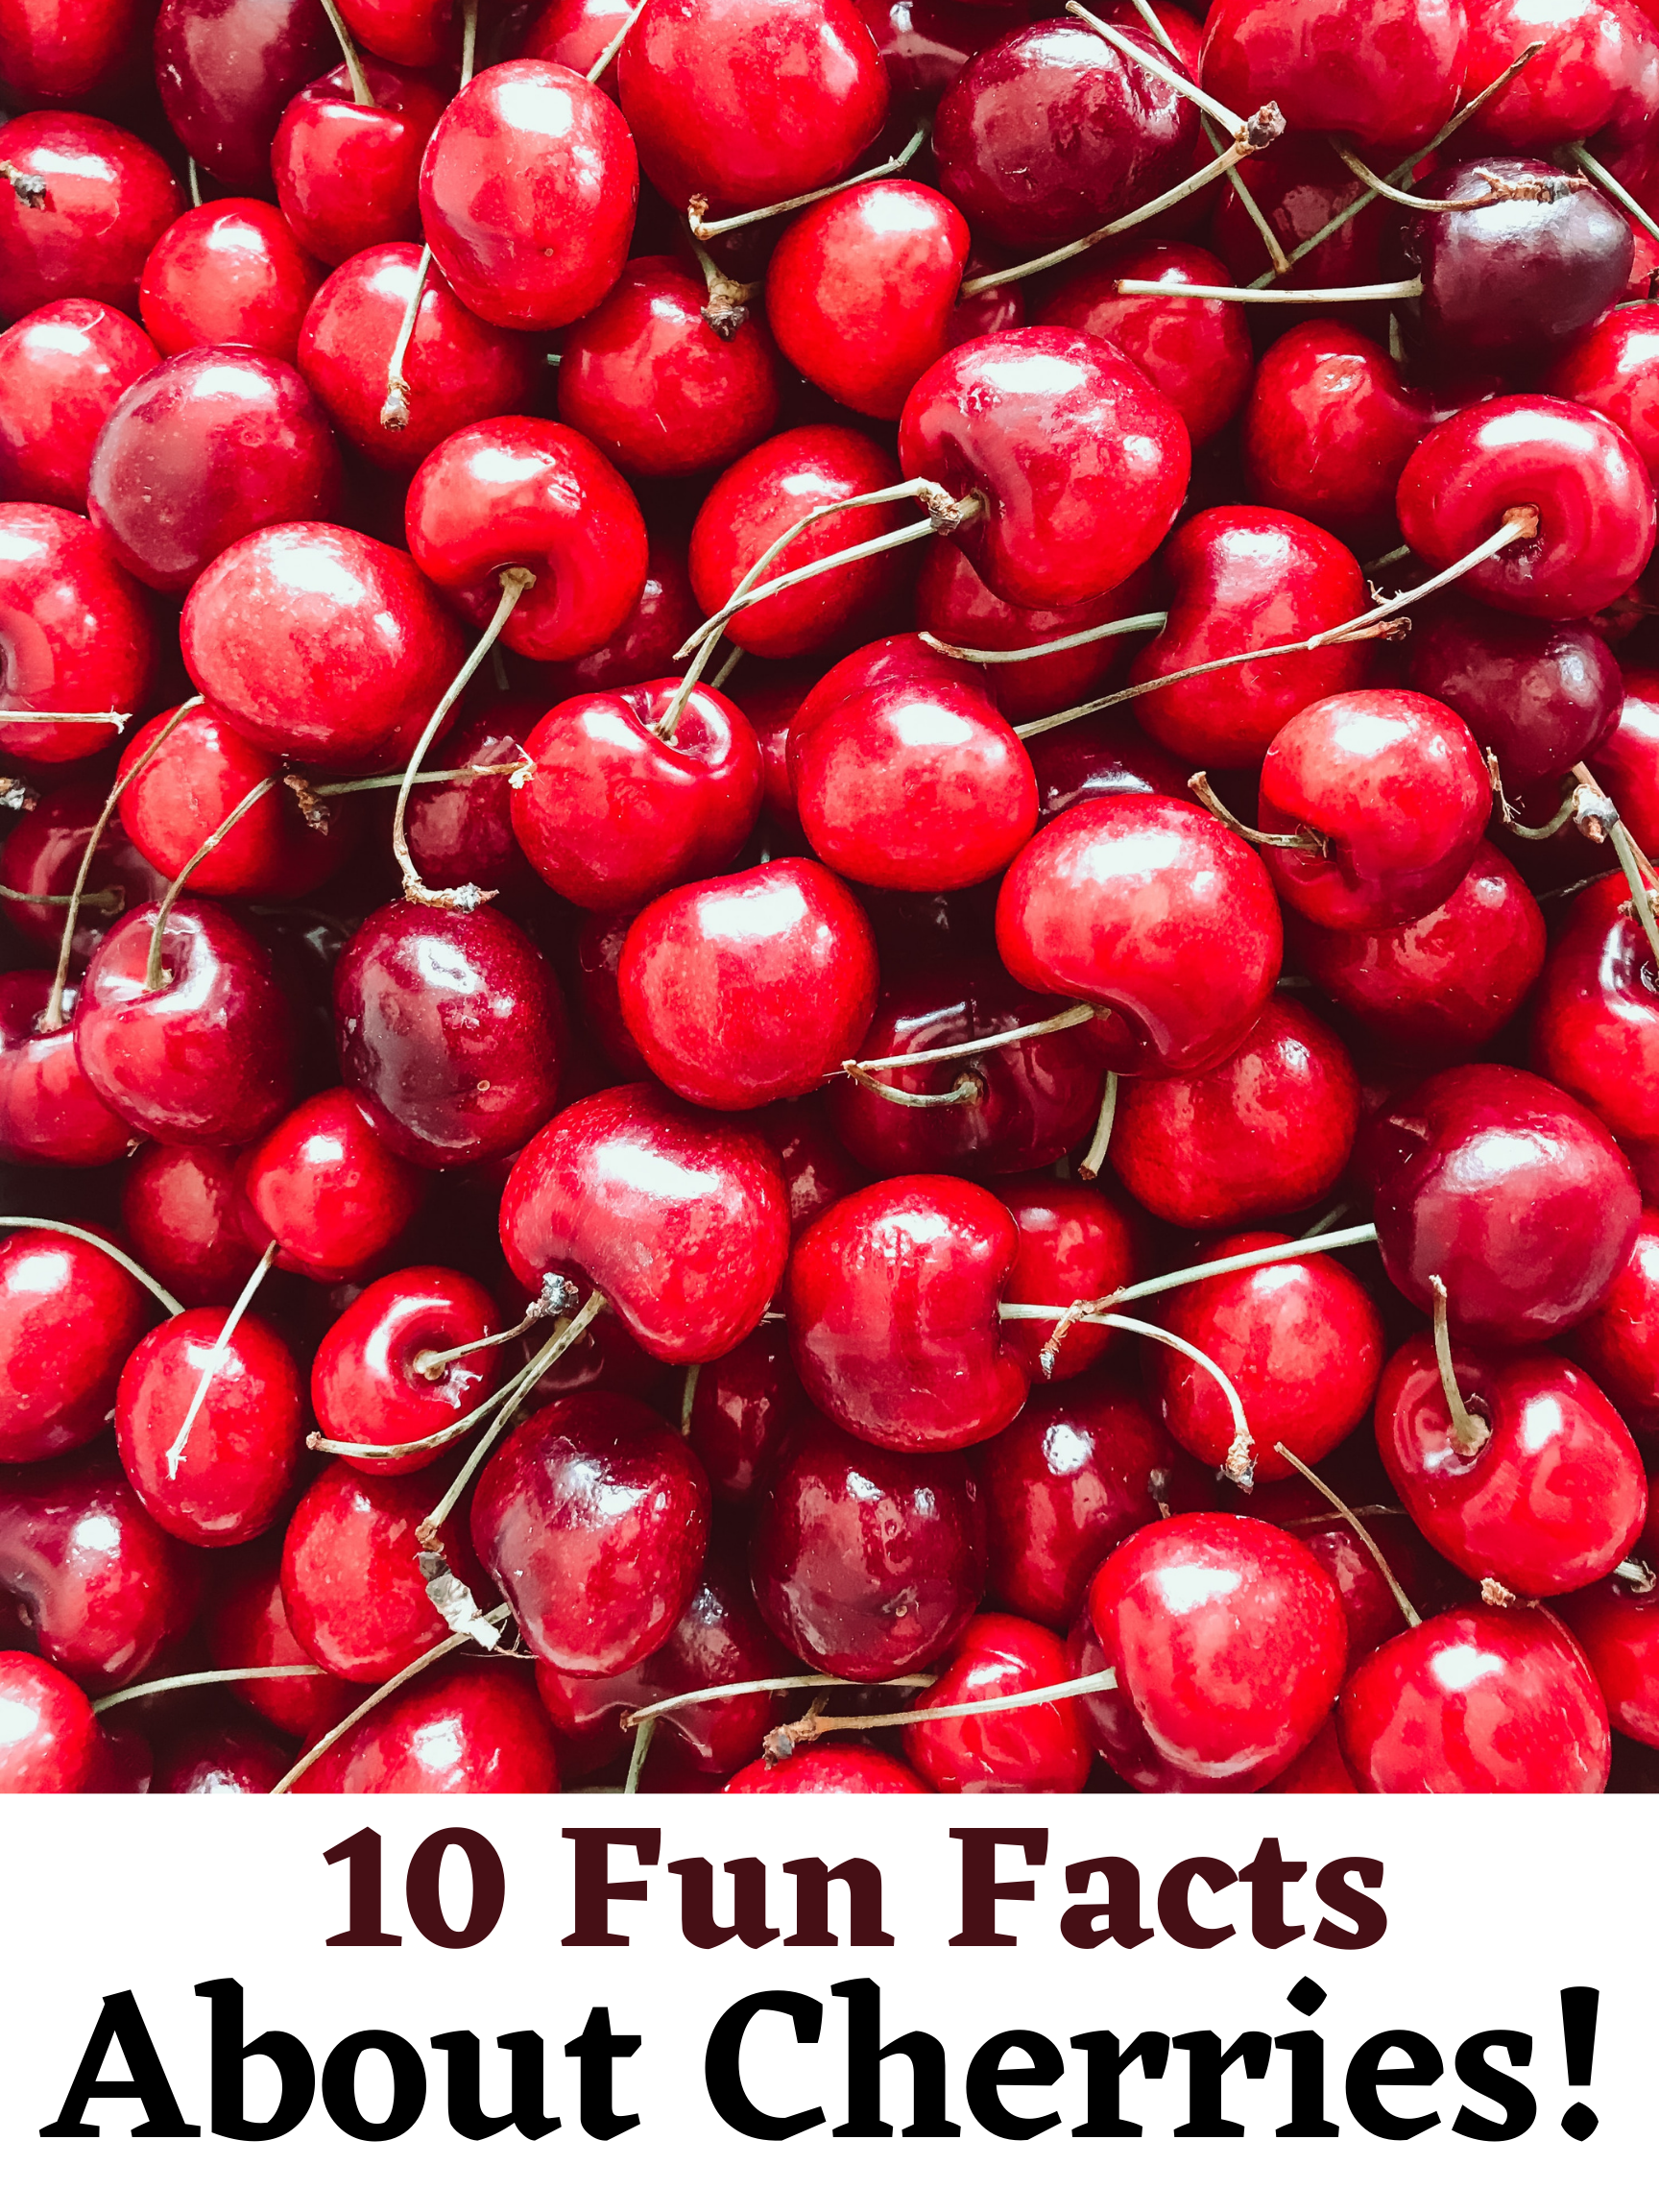 10 Fun Facts About Cherries